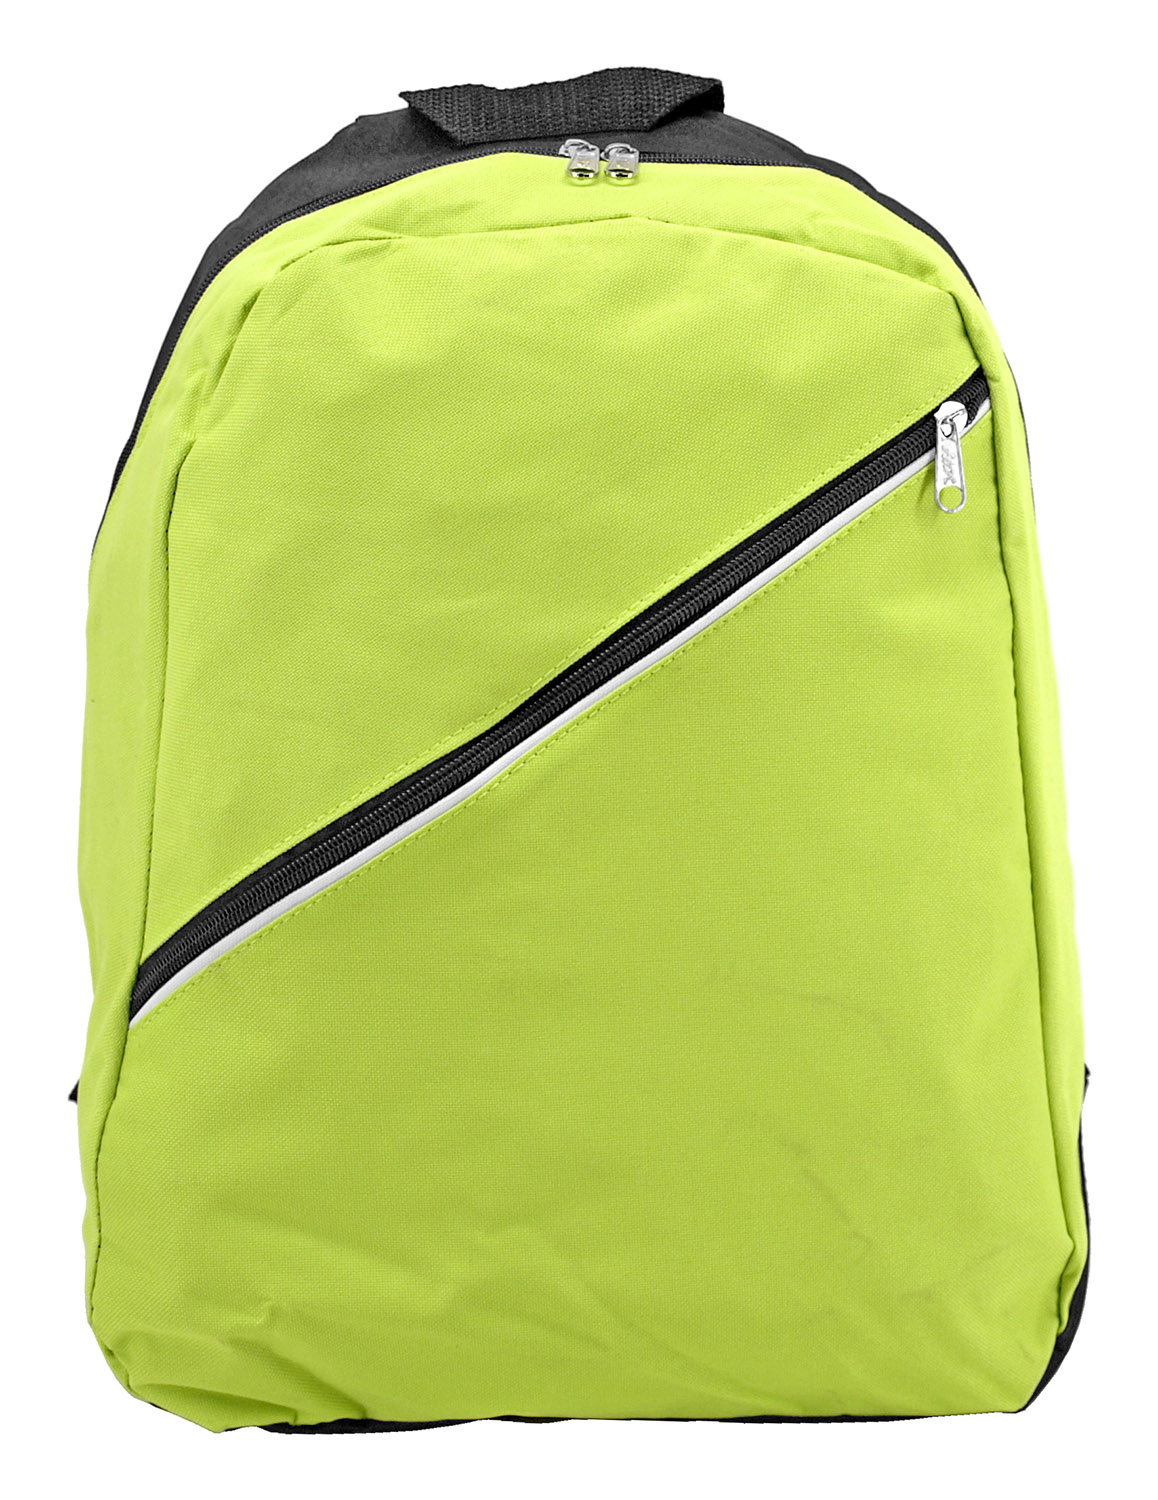 Back to School Backpack - Neon Green